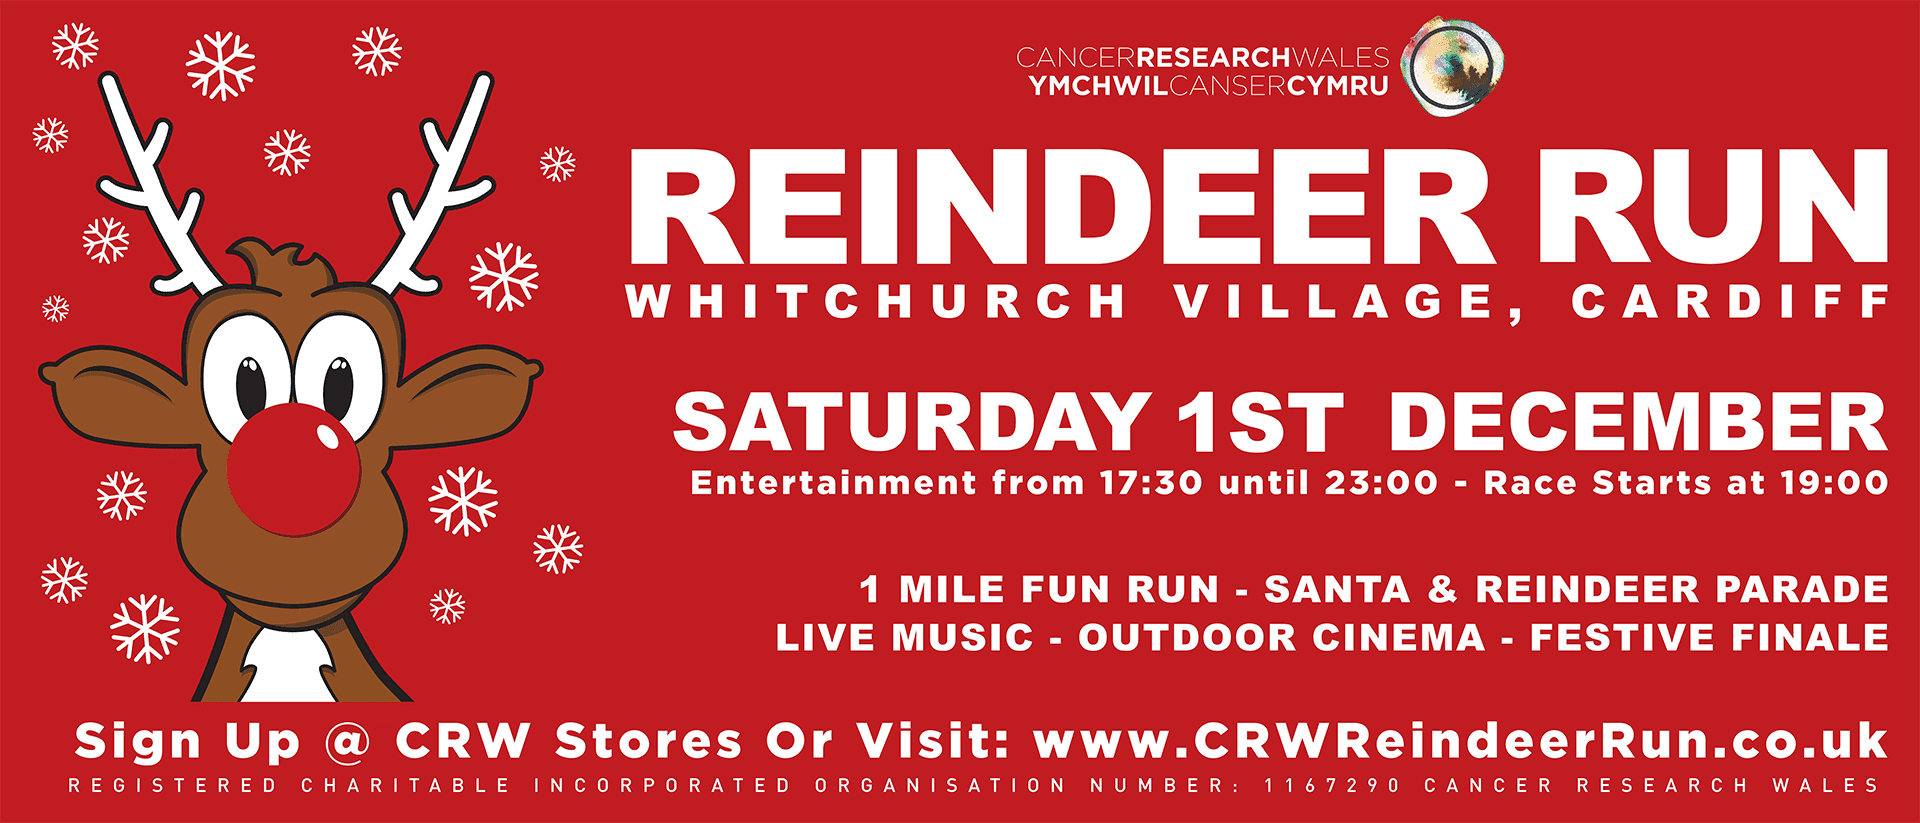 Cancer Research Wales Reindeer Run 2018 Timetable of events 1st December 2018